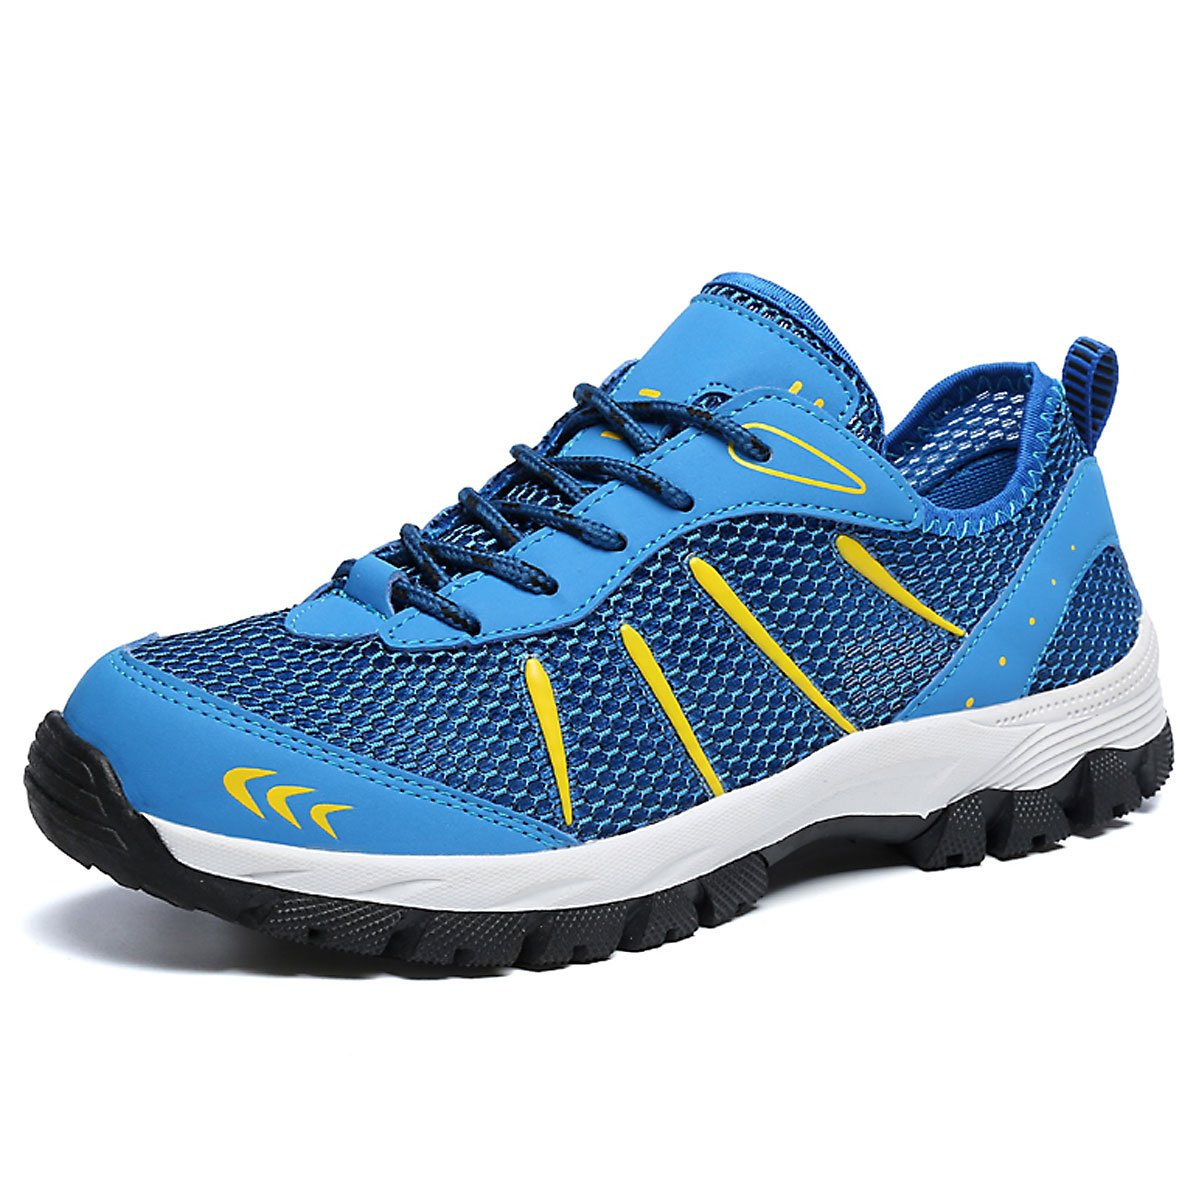 CHNHIRA Men's Trainers Breathable Sneakers Lace UP Soft Climbing Hiking Shoes Sports LT